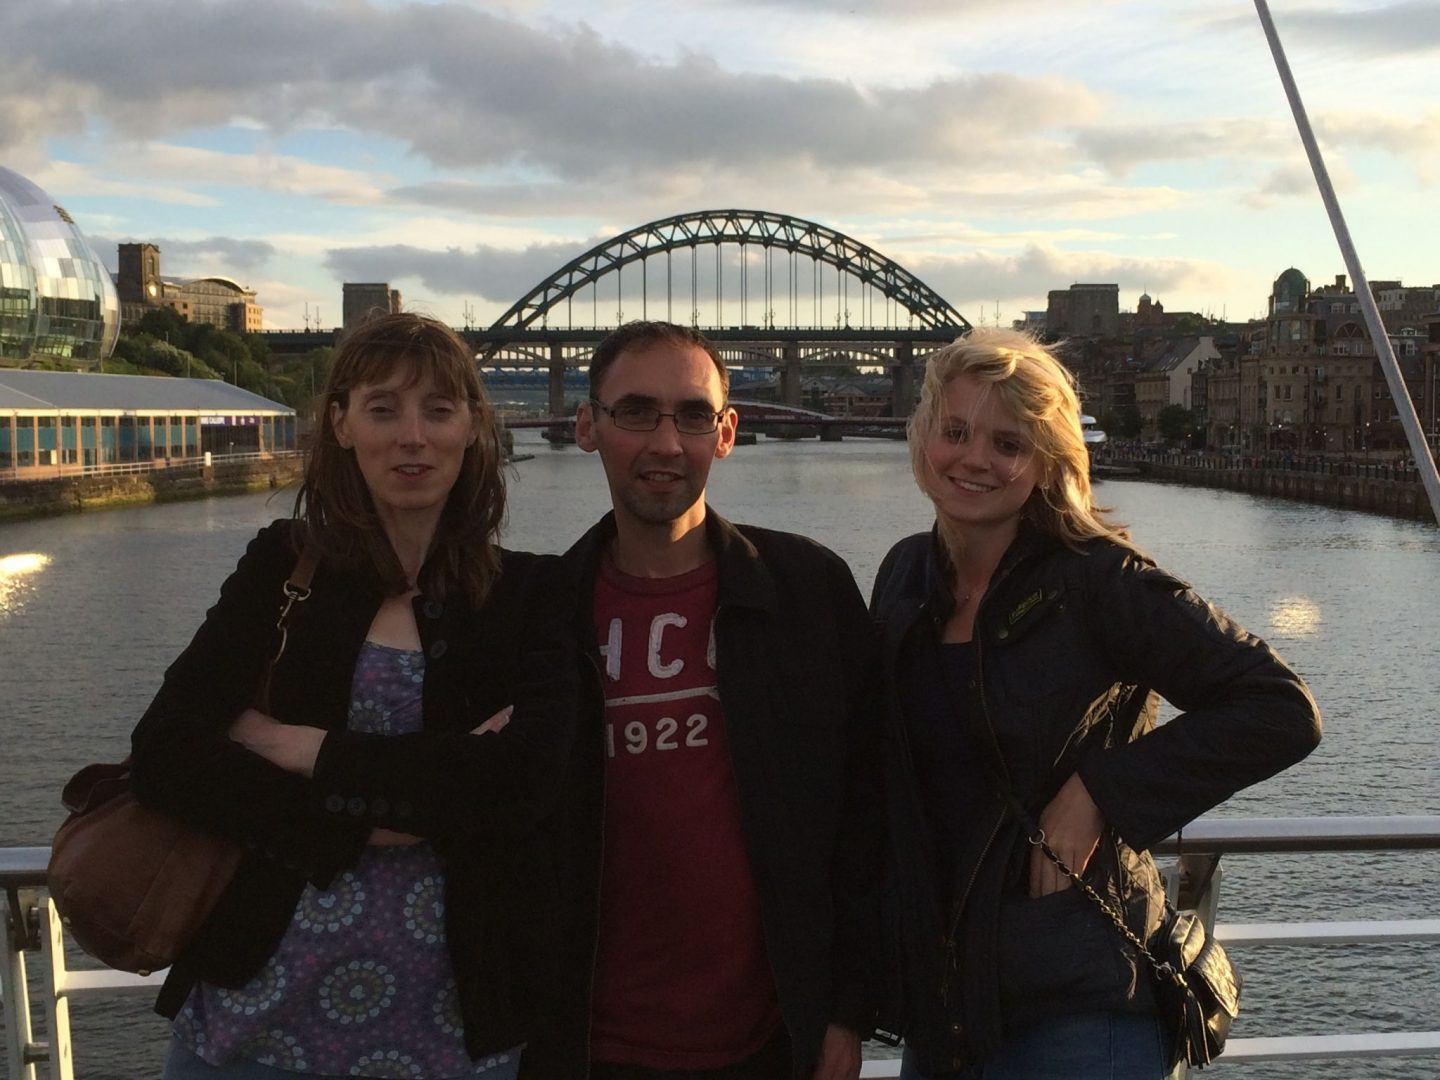 Family at the Tyne Bridge, Newcastle